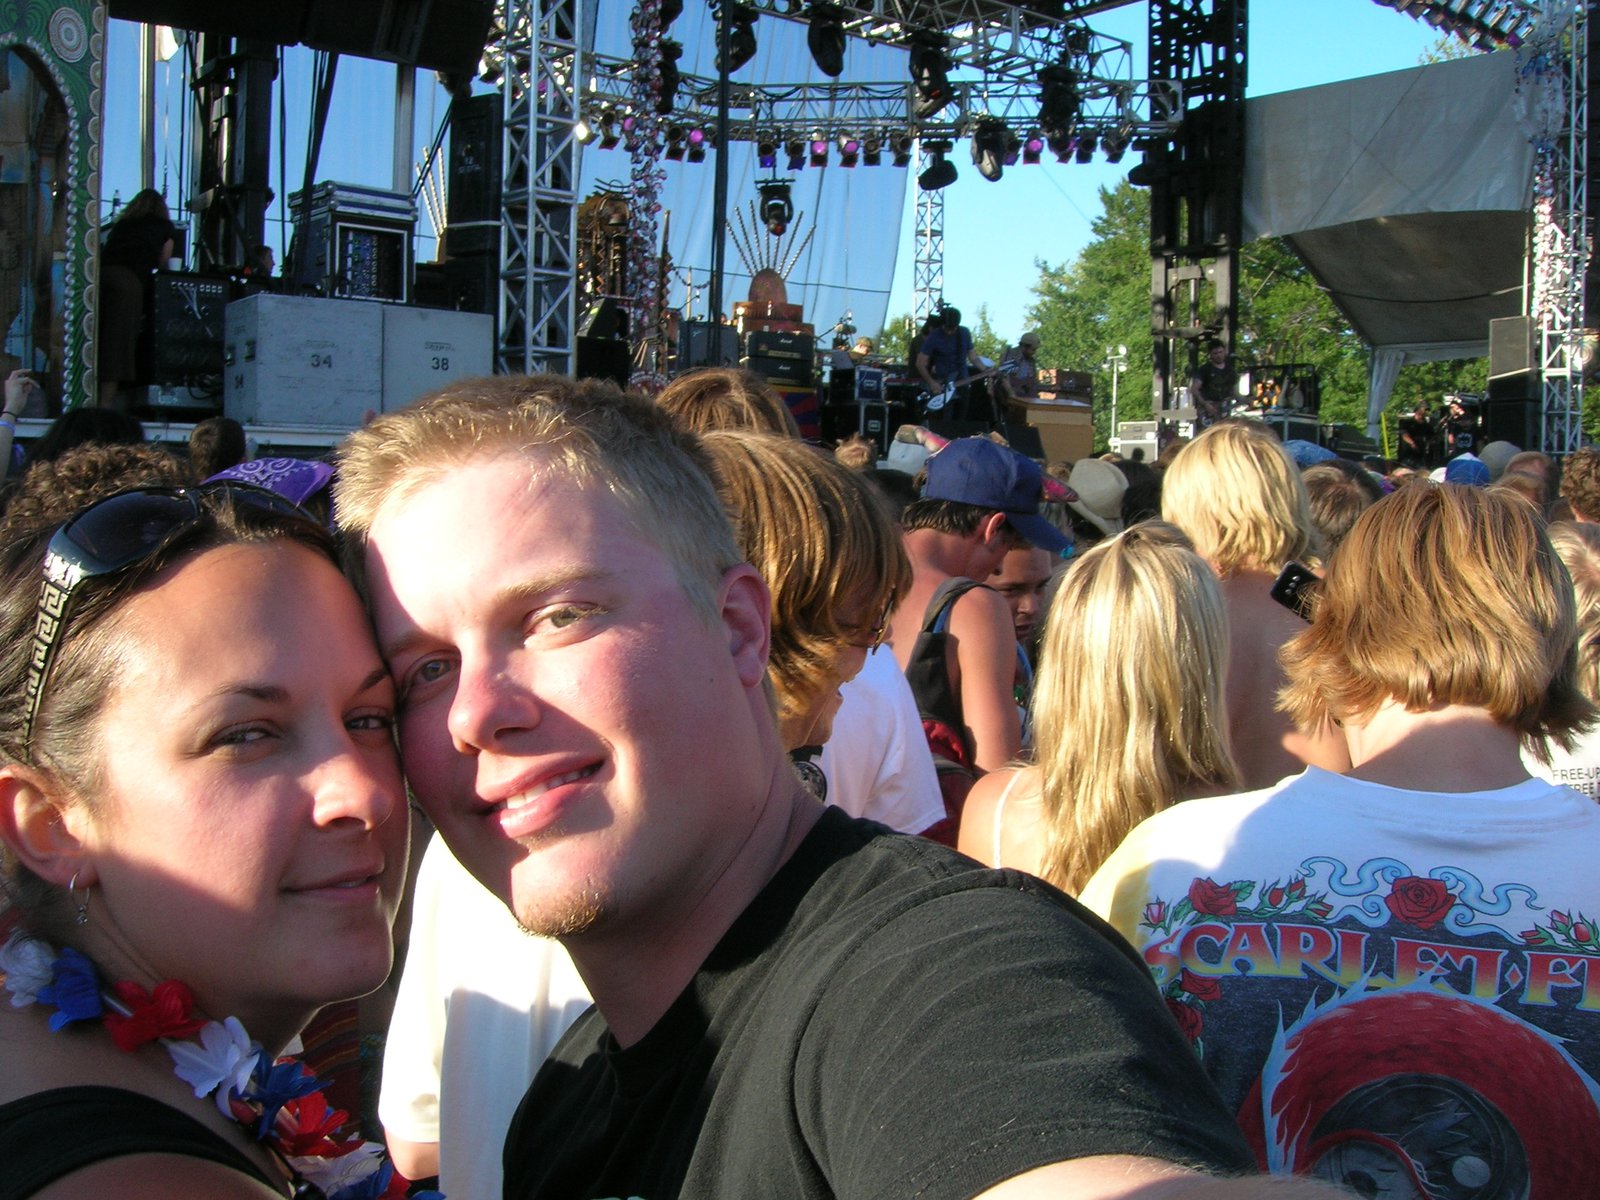 Jess and I with Modest Mouse in background